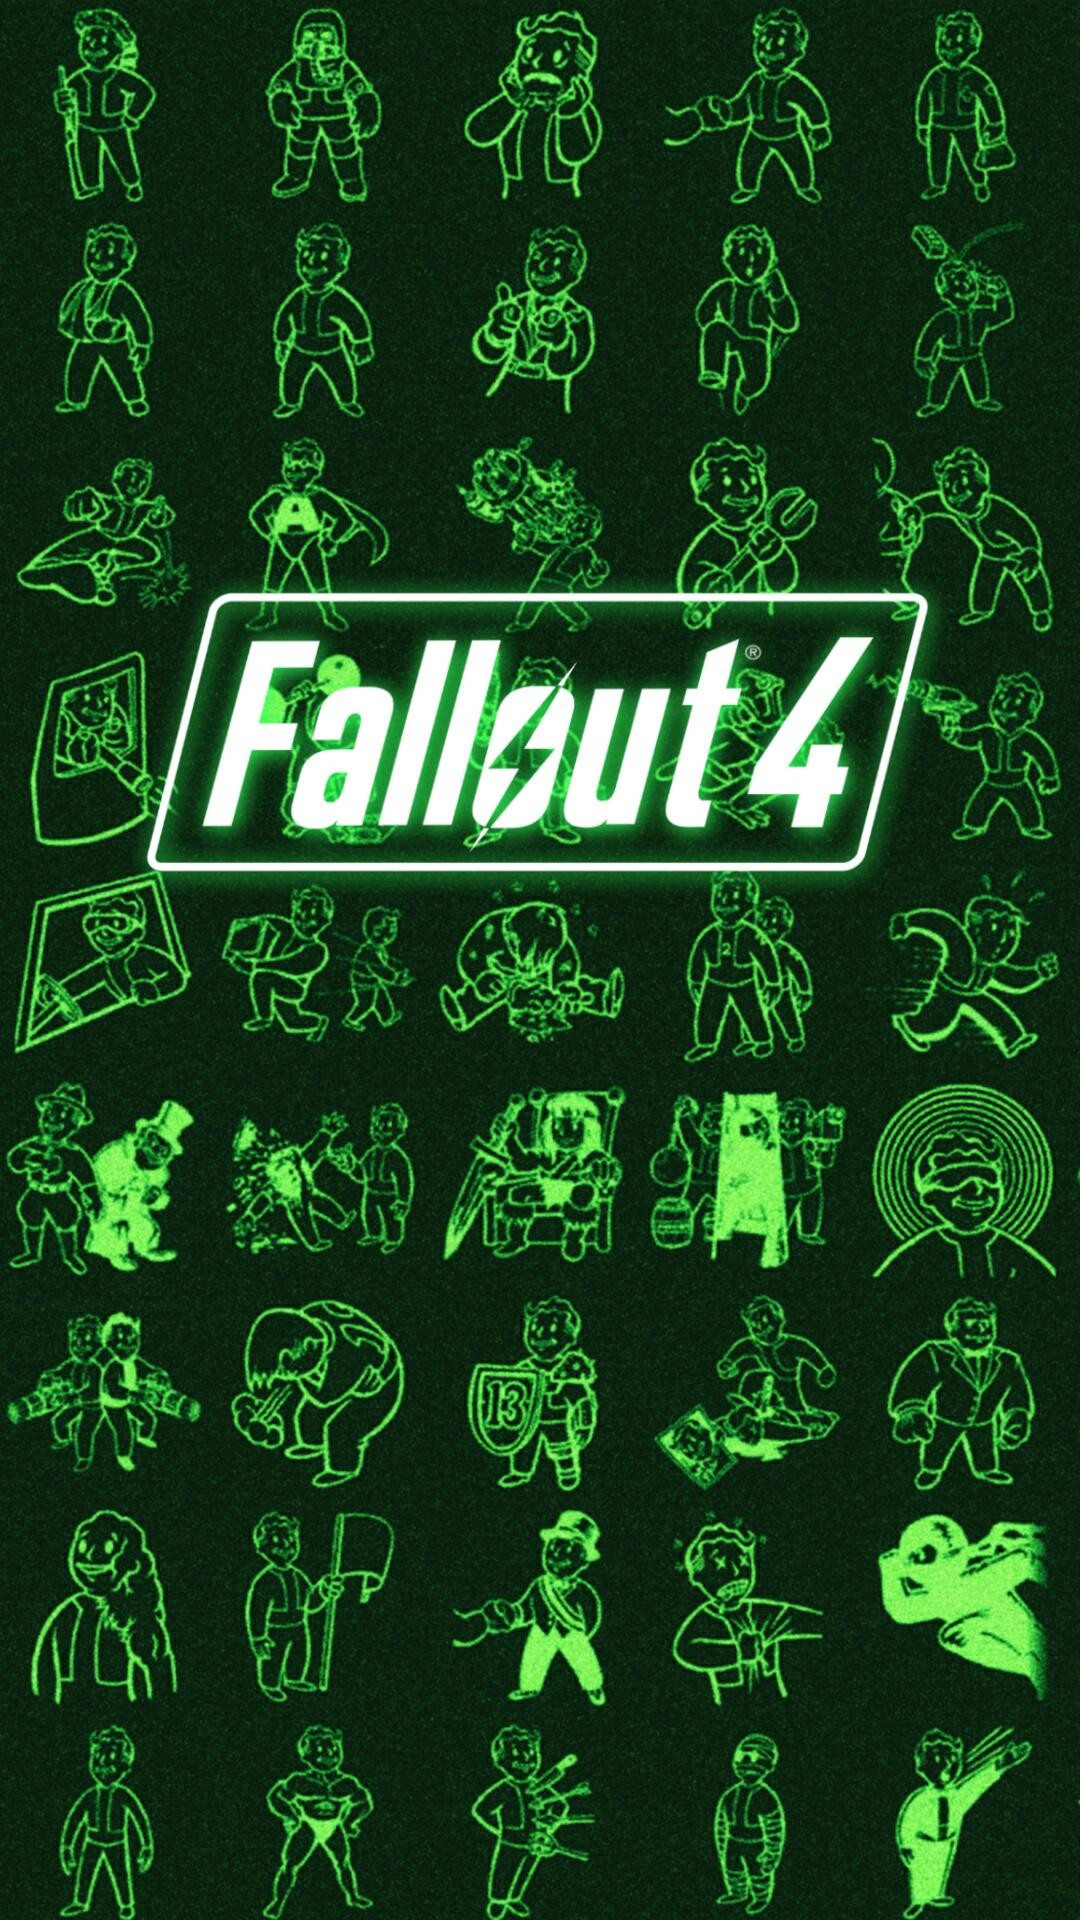 Hd Supreme Wallpaper Iphone X Fallout 4 Phone Wallpaper 183 ① Download Free High Resolution